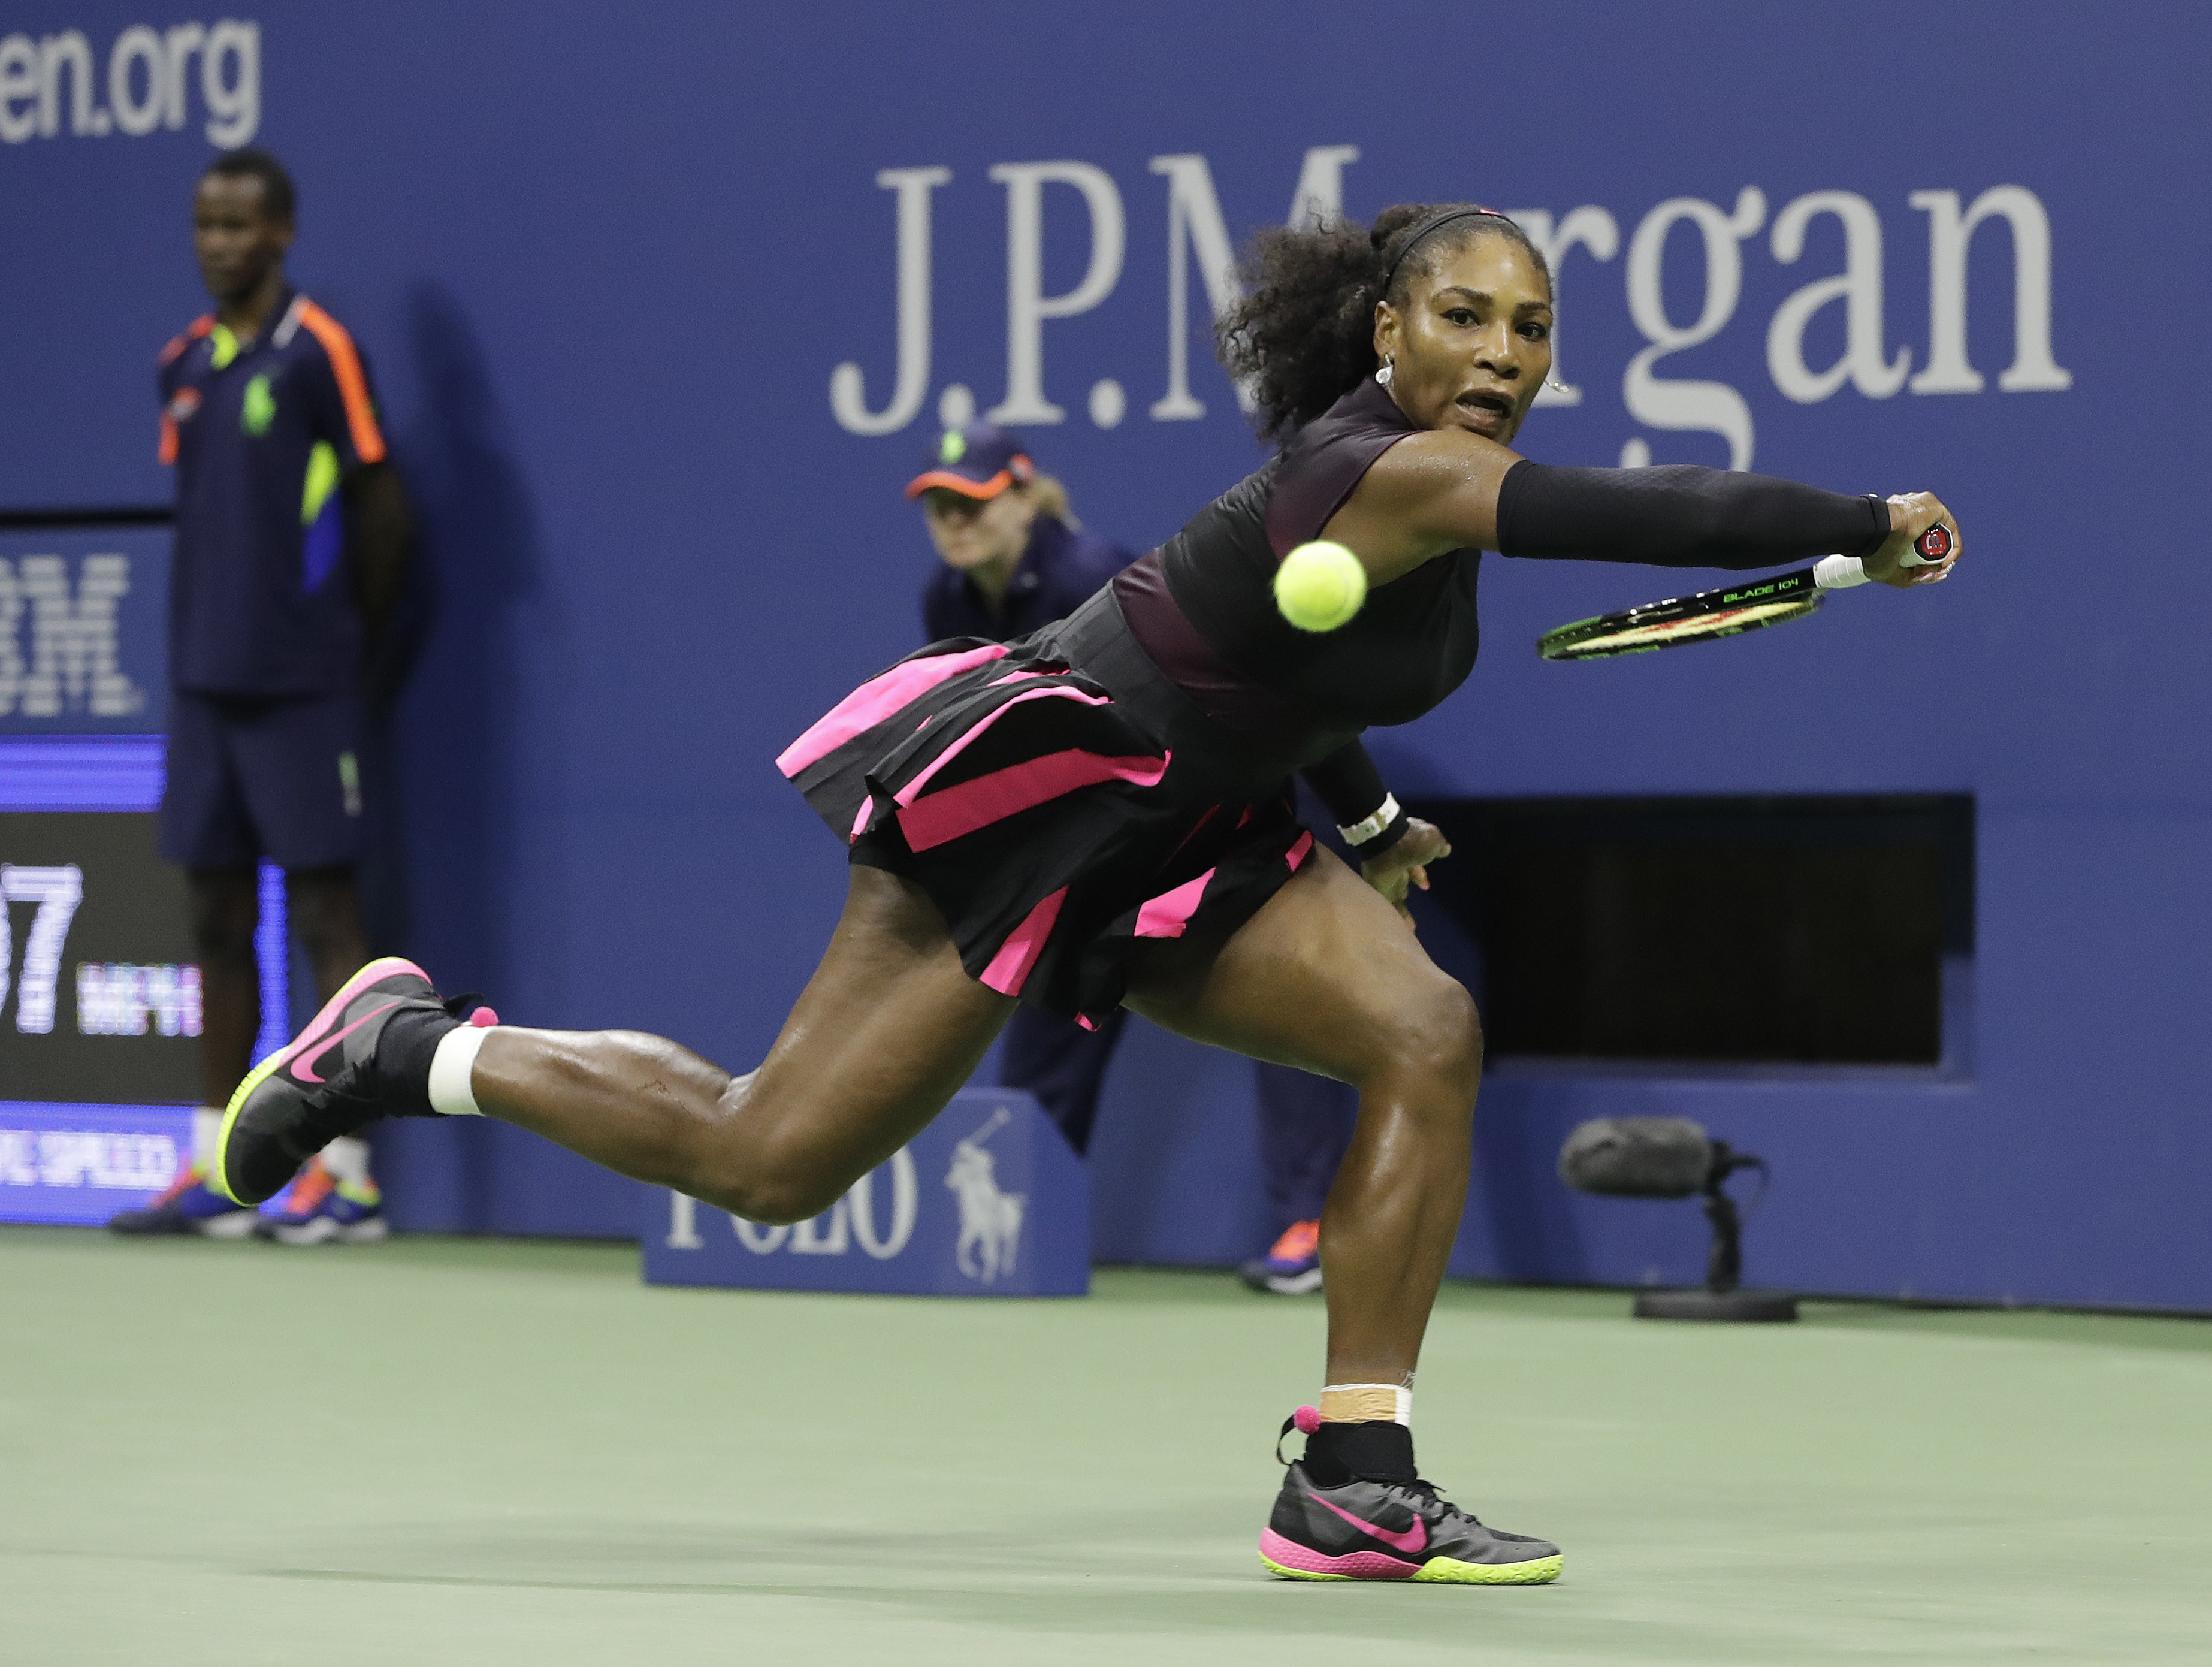 Serena Williams, of the United States, prepares to return a shot from Ekaterina Makarova, of Russia, during the first round of the U.S. Open tennis tournament, Tuesday, Aug. 30, 2016, in New York. (AP Photo/Darron Cummings)